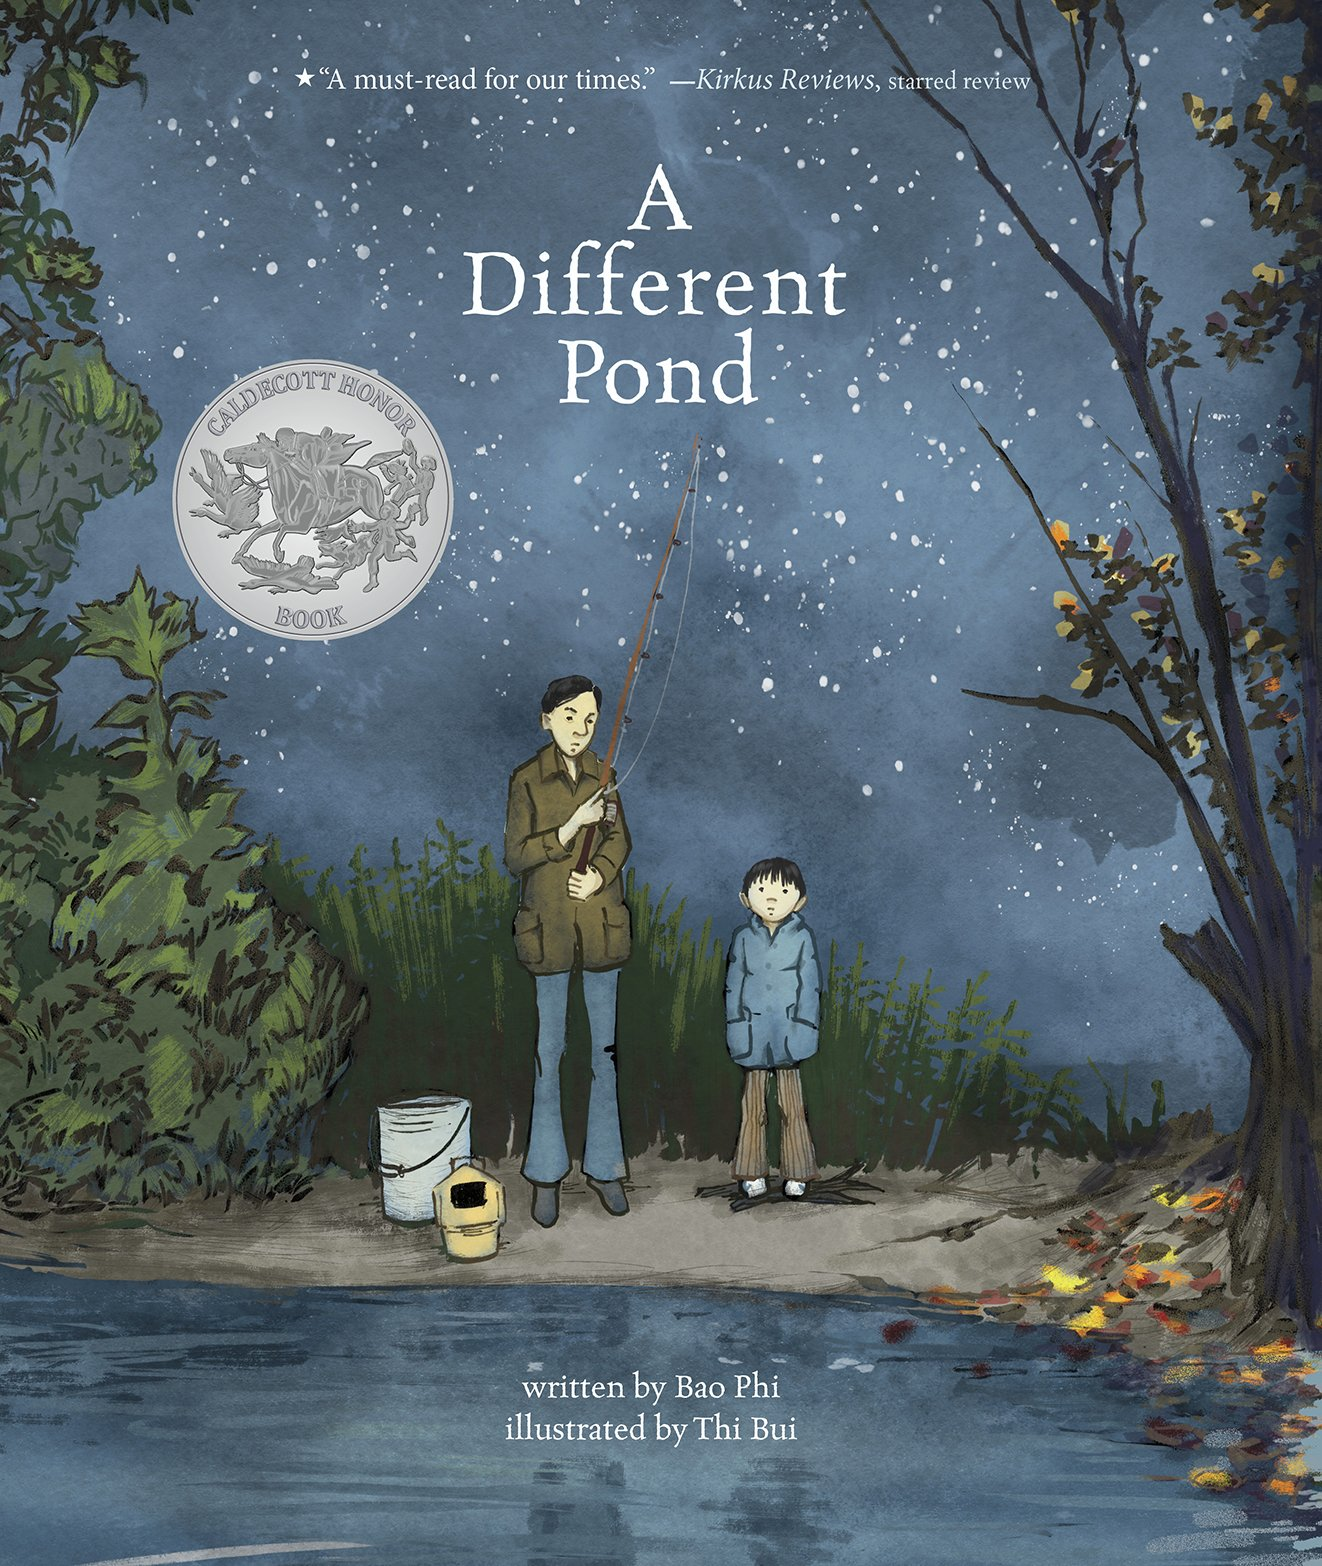 A Different Pond: Bao Phi, Thi Bui: 9781623708030: Amazon.com: Books